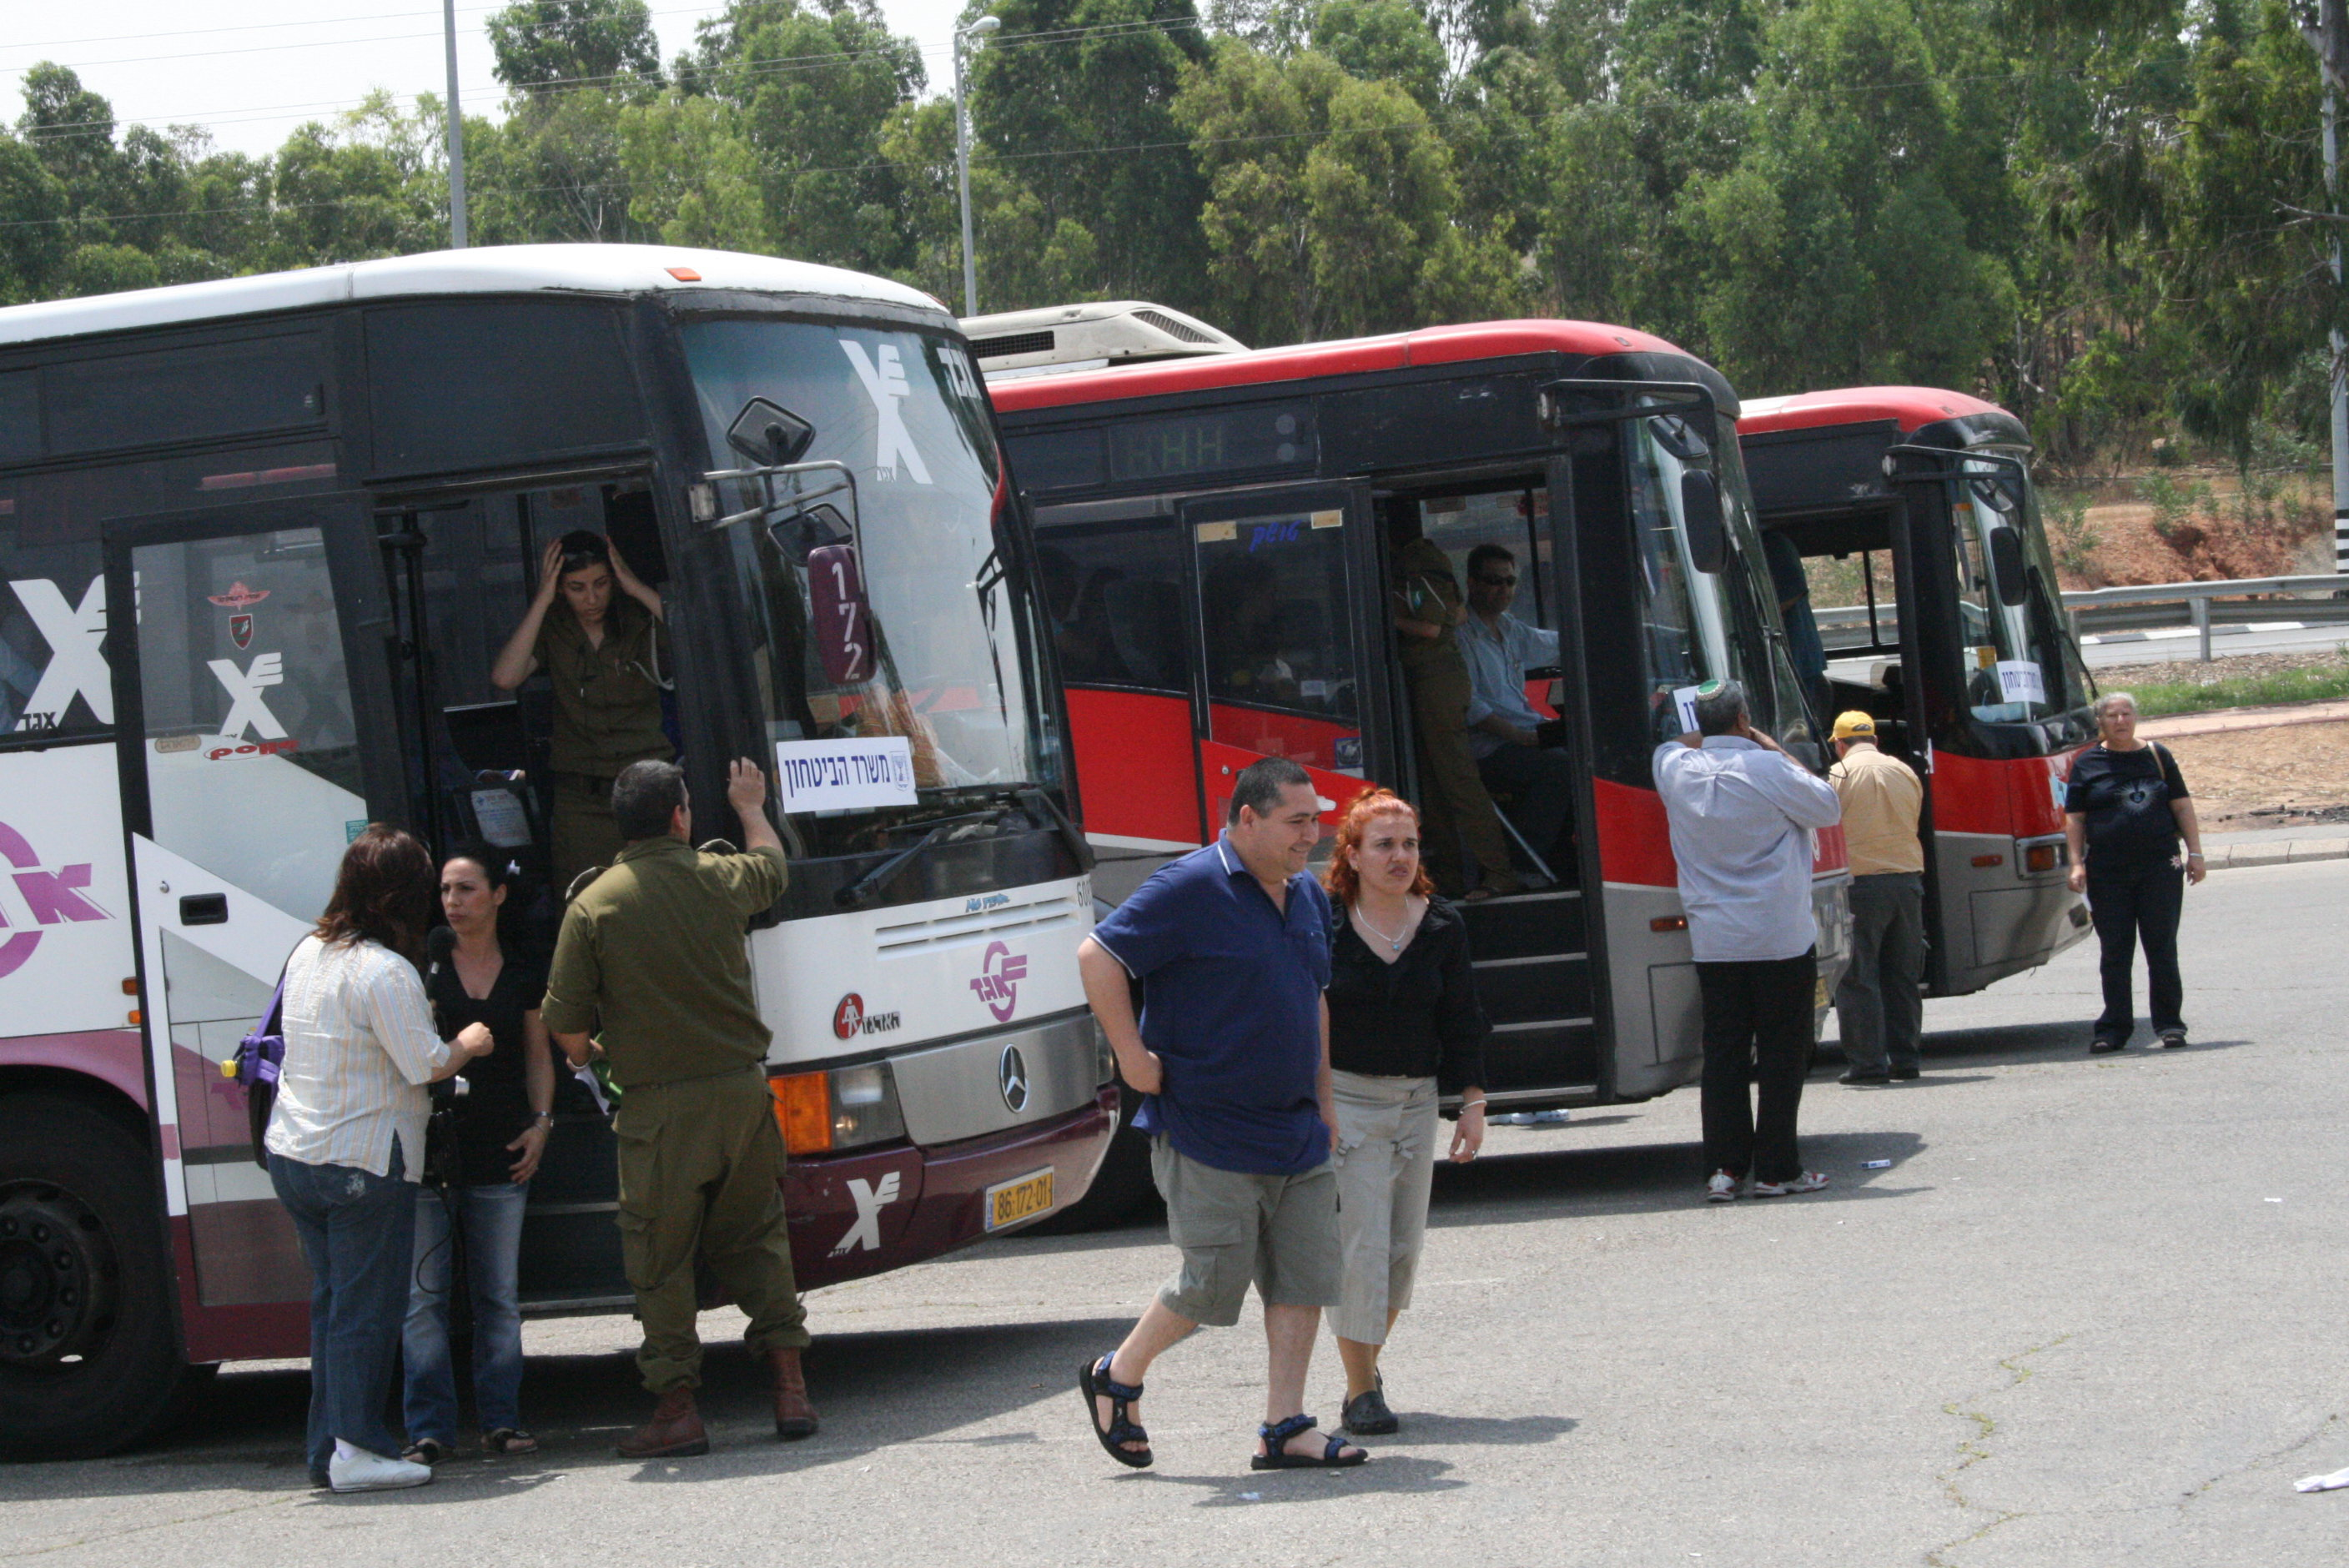 Buses organised by Israel's Ministry of Defence to evacuate residents from Sderot, scene of intense rocket fire from the Gaza Strip ,Sderot, OPT/ Israel, May 2007.